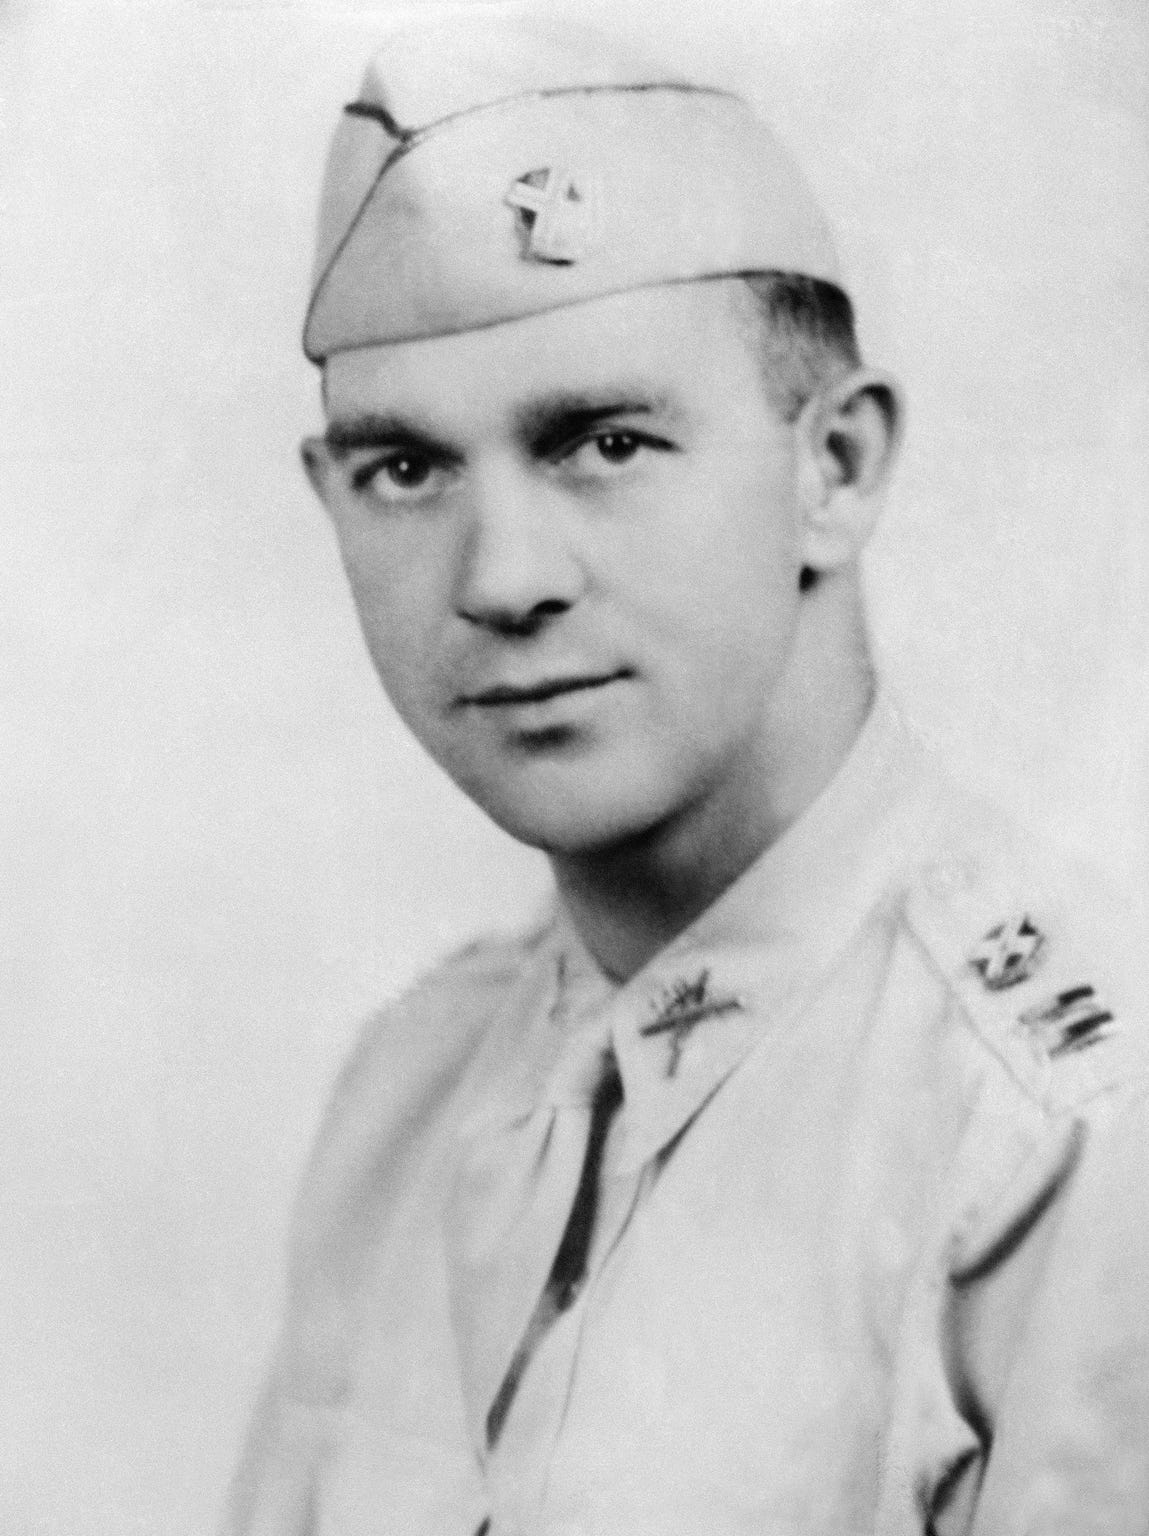 """Thomas D. Howie, of Stauton, Va., serving with the 116th Infantry, has been identified as the heroic """"Major of St. Lo"""" who was killed in action, July 17, while leading his troops into the Normandy City, and whose flag-draped body was placed on a pile of rubble by a church as his men continued to fight on before it. (AP Photo)"""